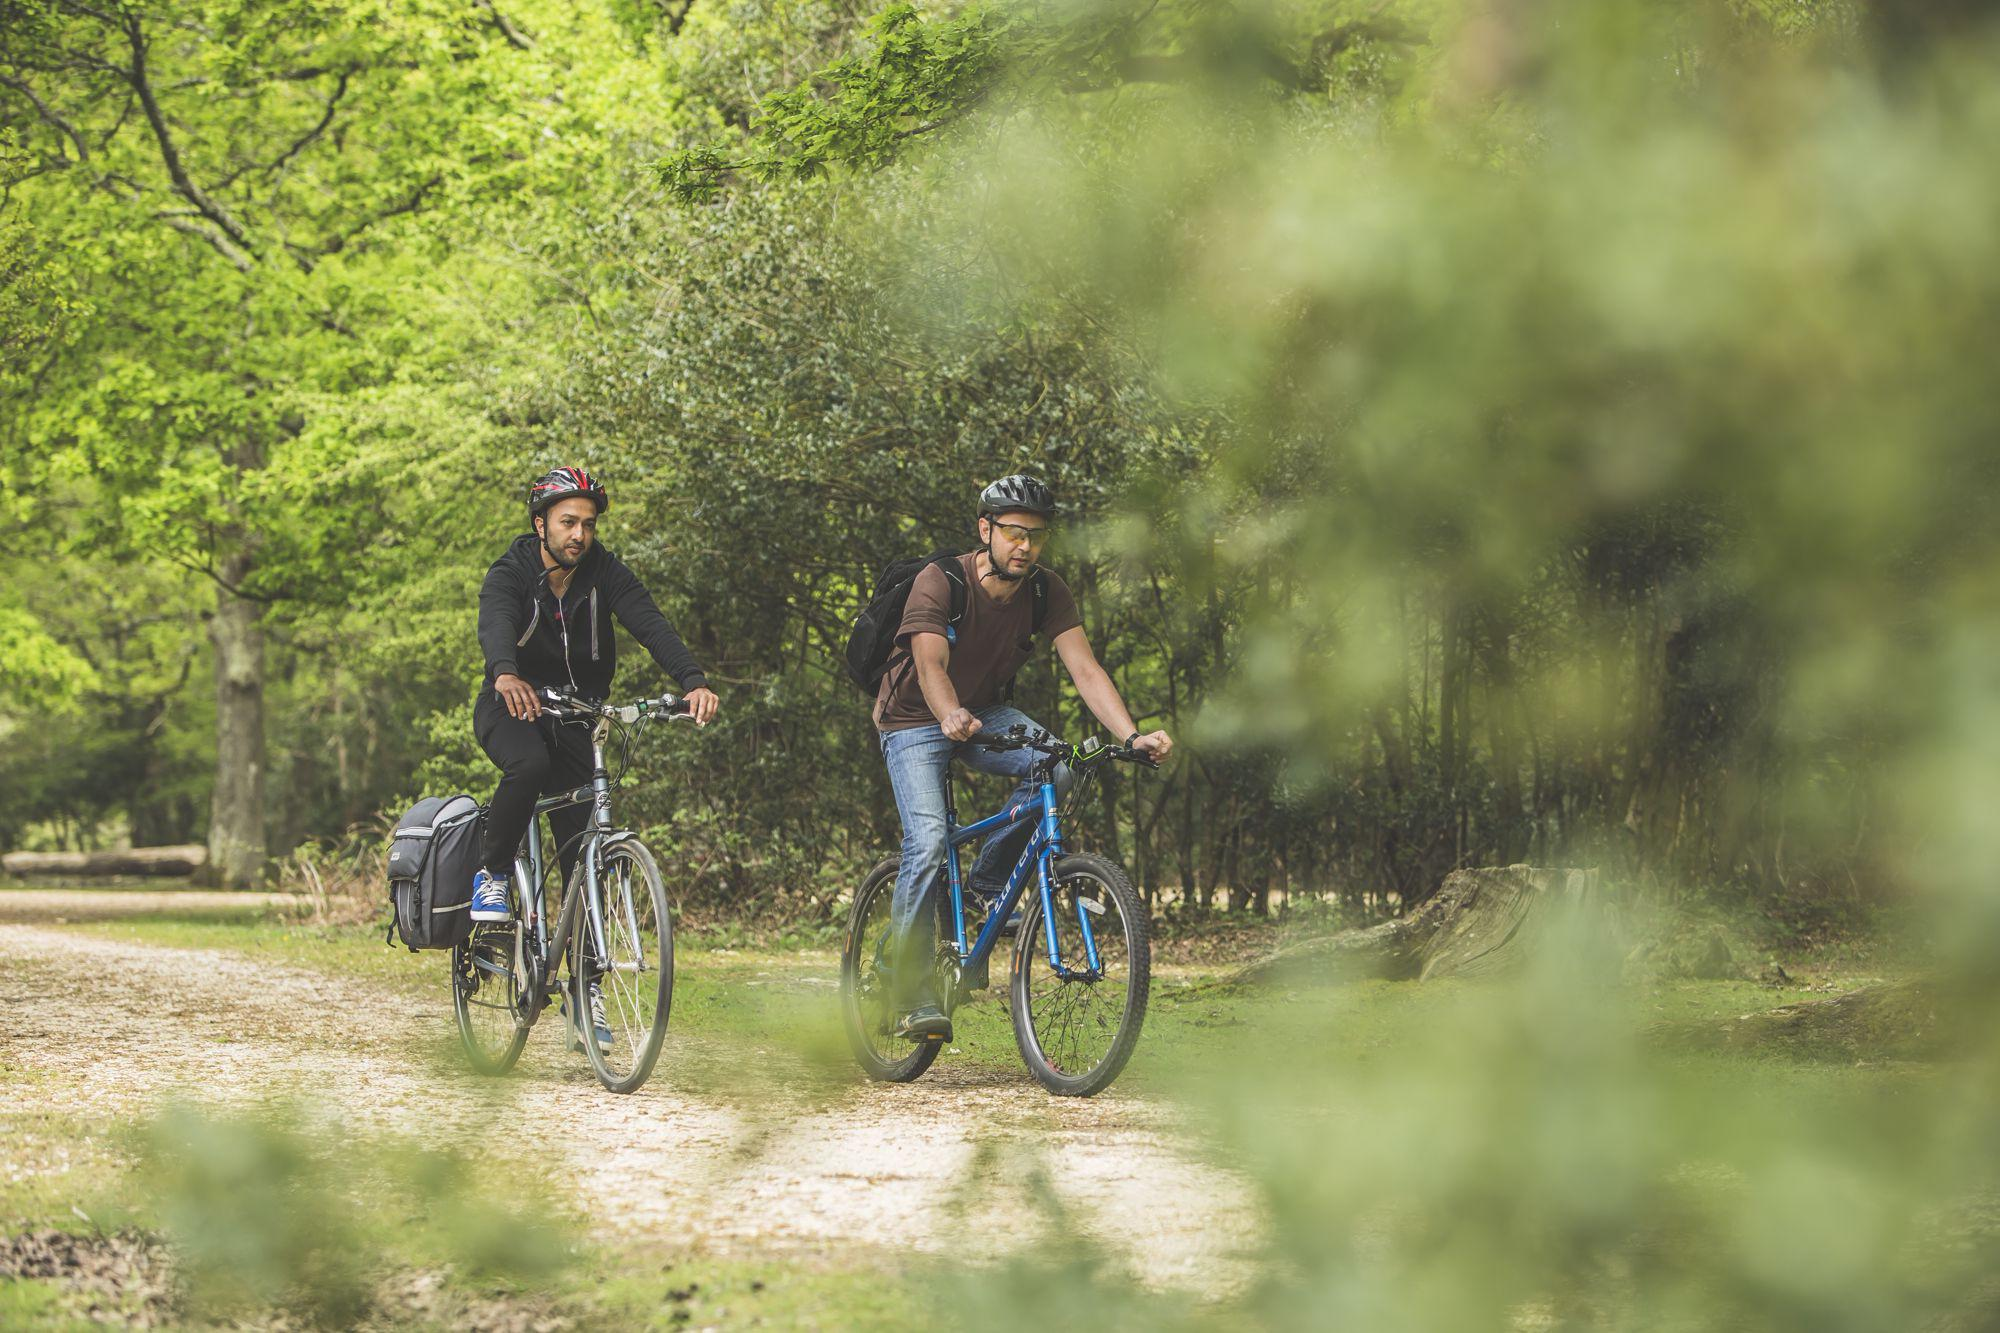 New Forest car-free cycle paths